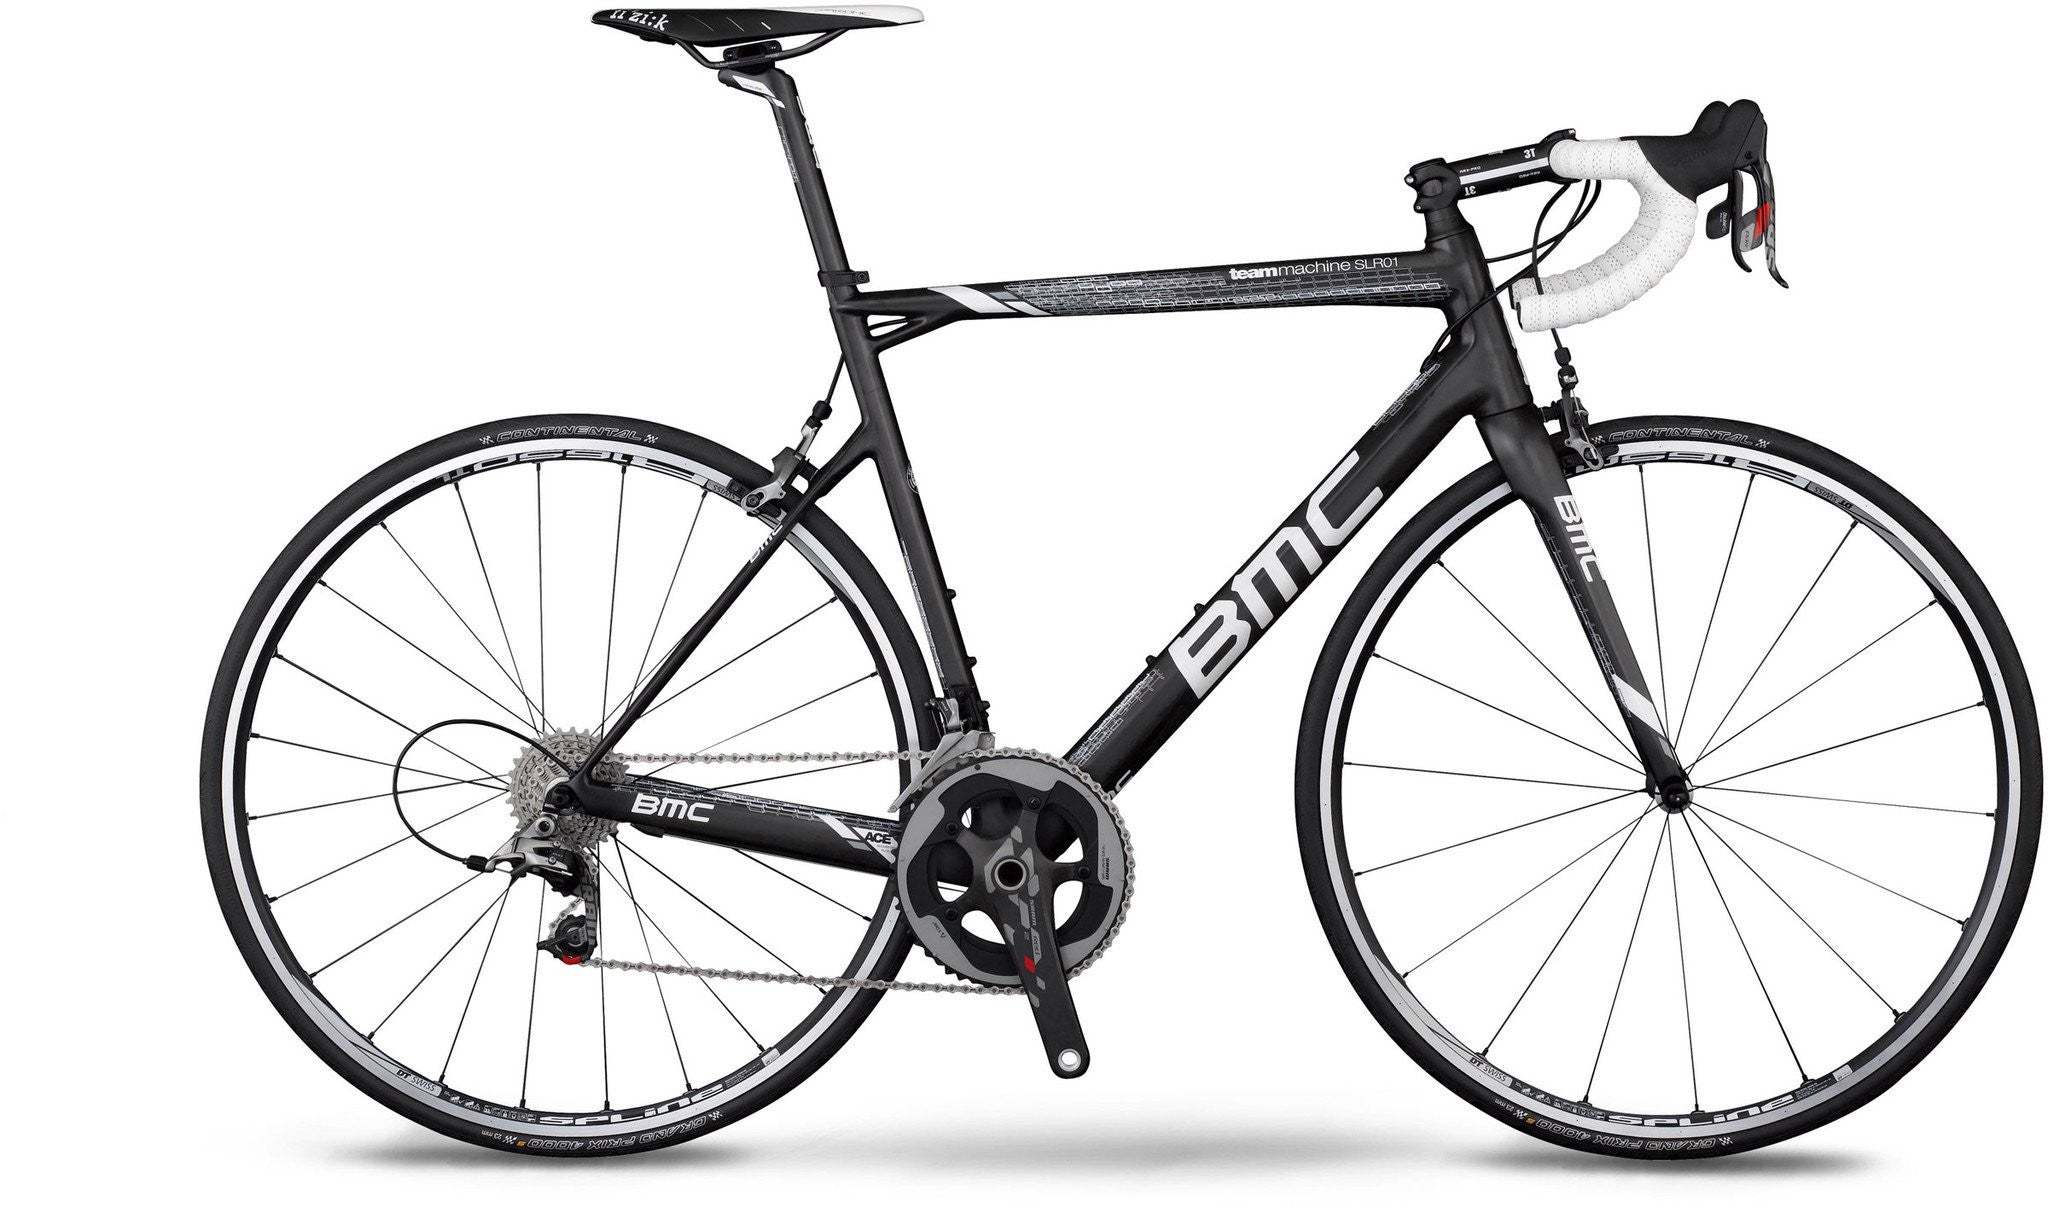 2014 BMC SLR01 SRAM Red22 Road Bike